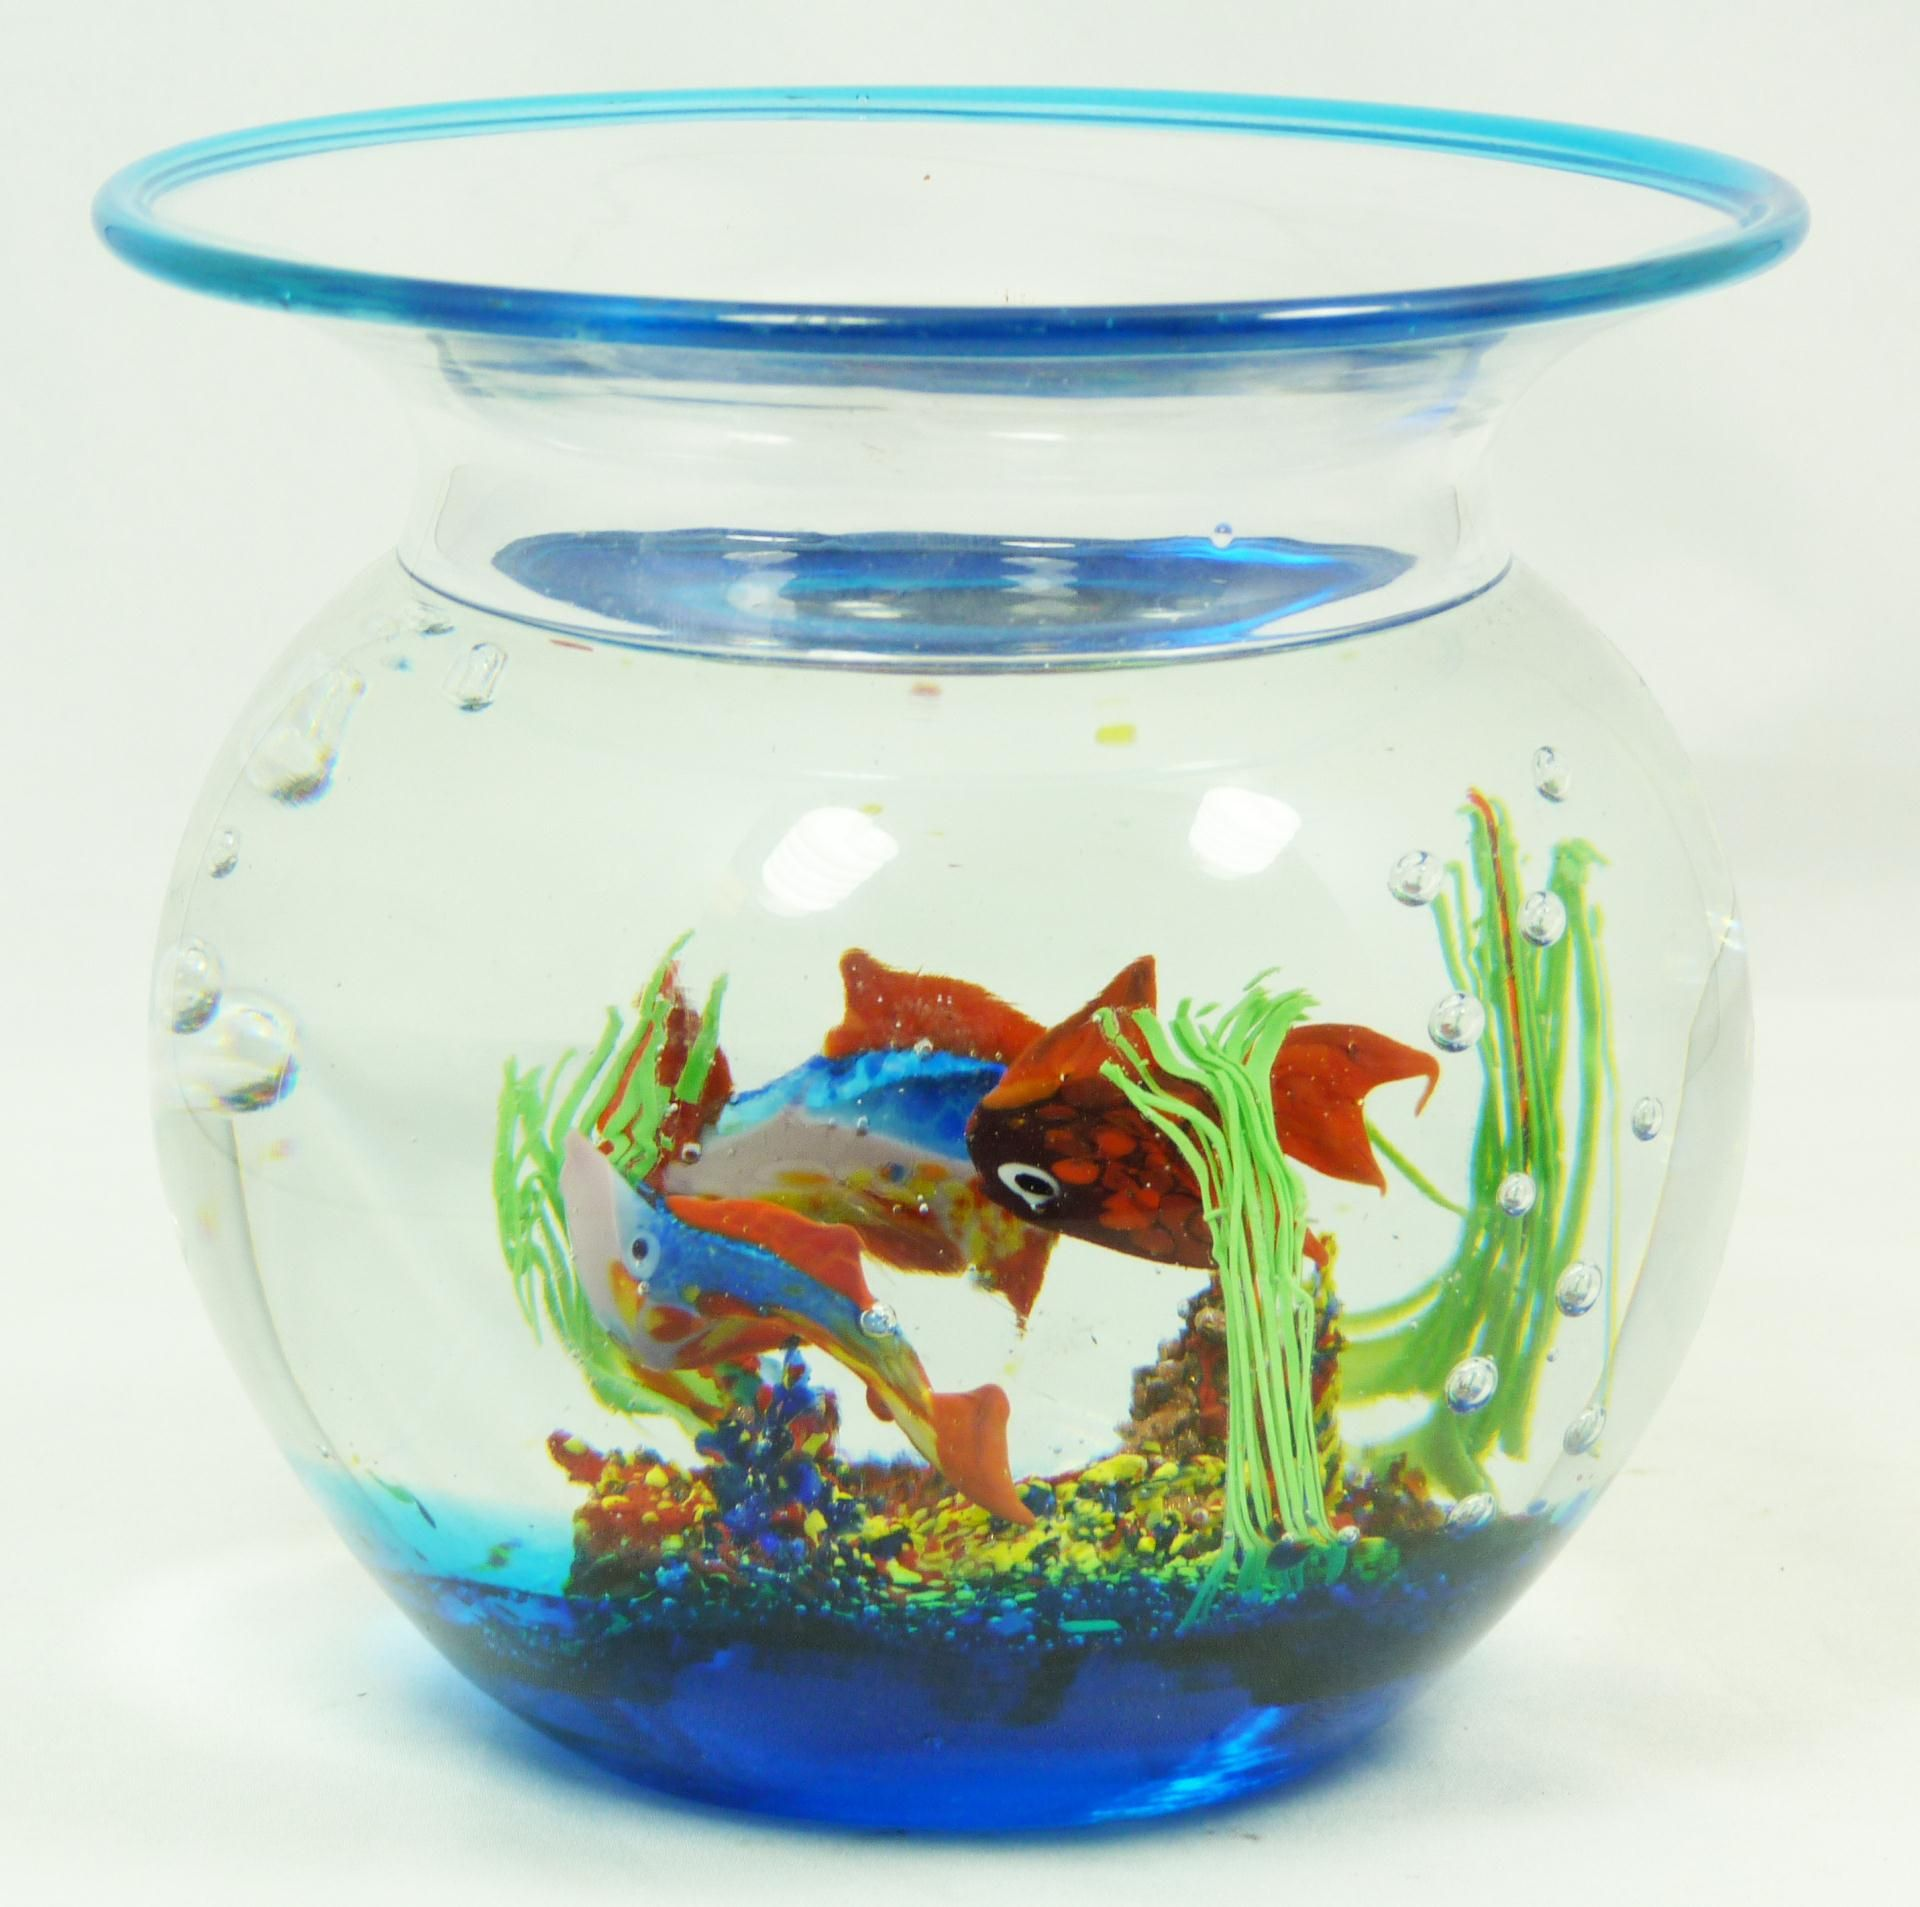 Glass fish bowl decorations the image for Glass fish bowls